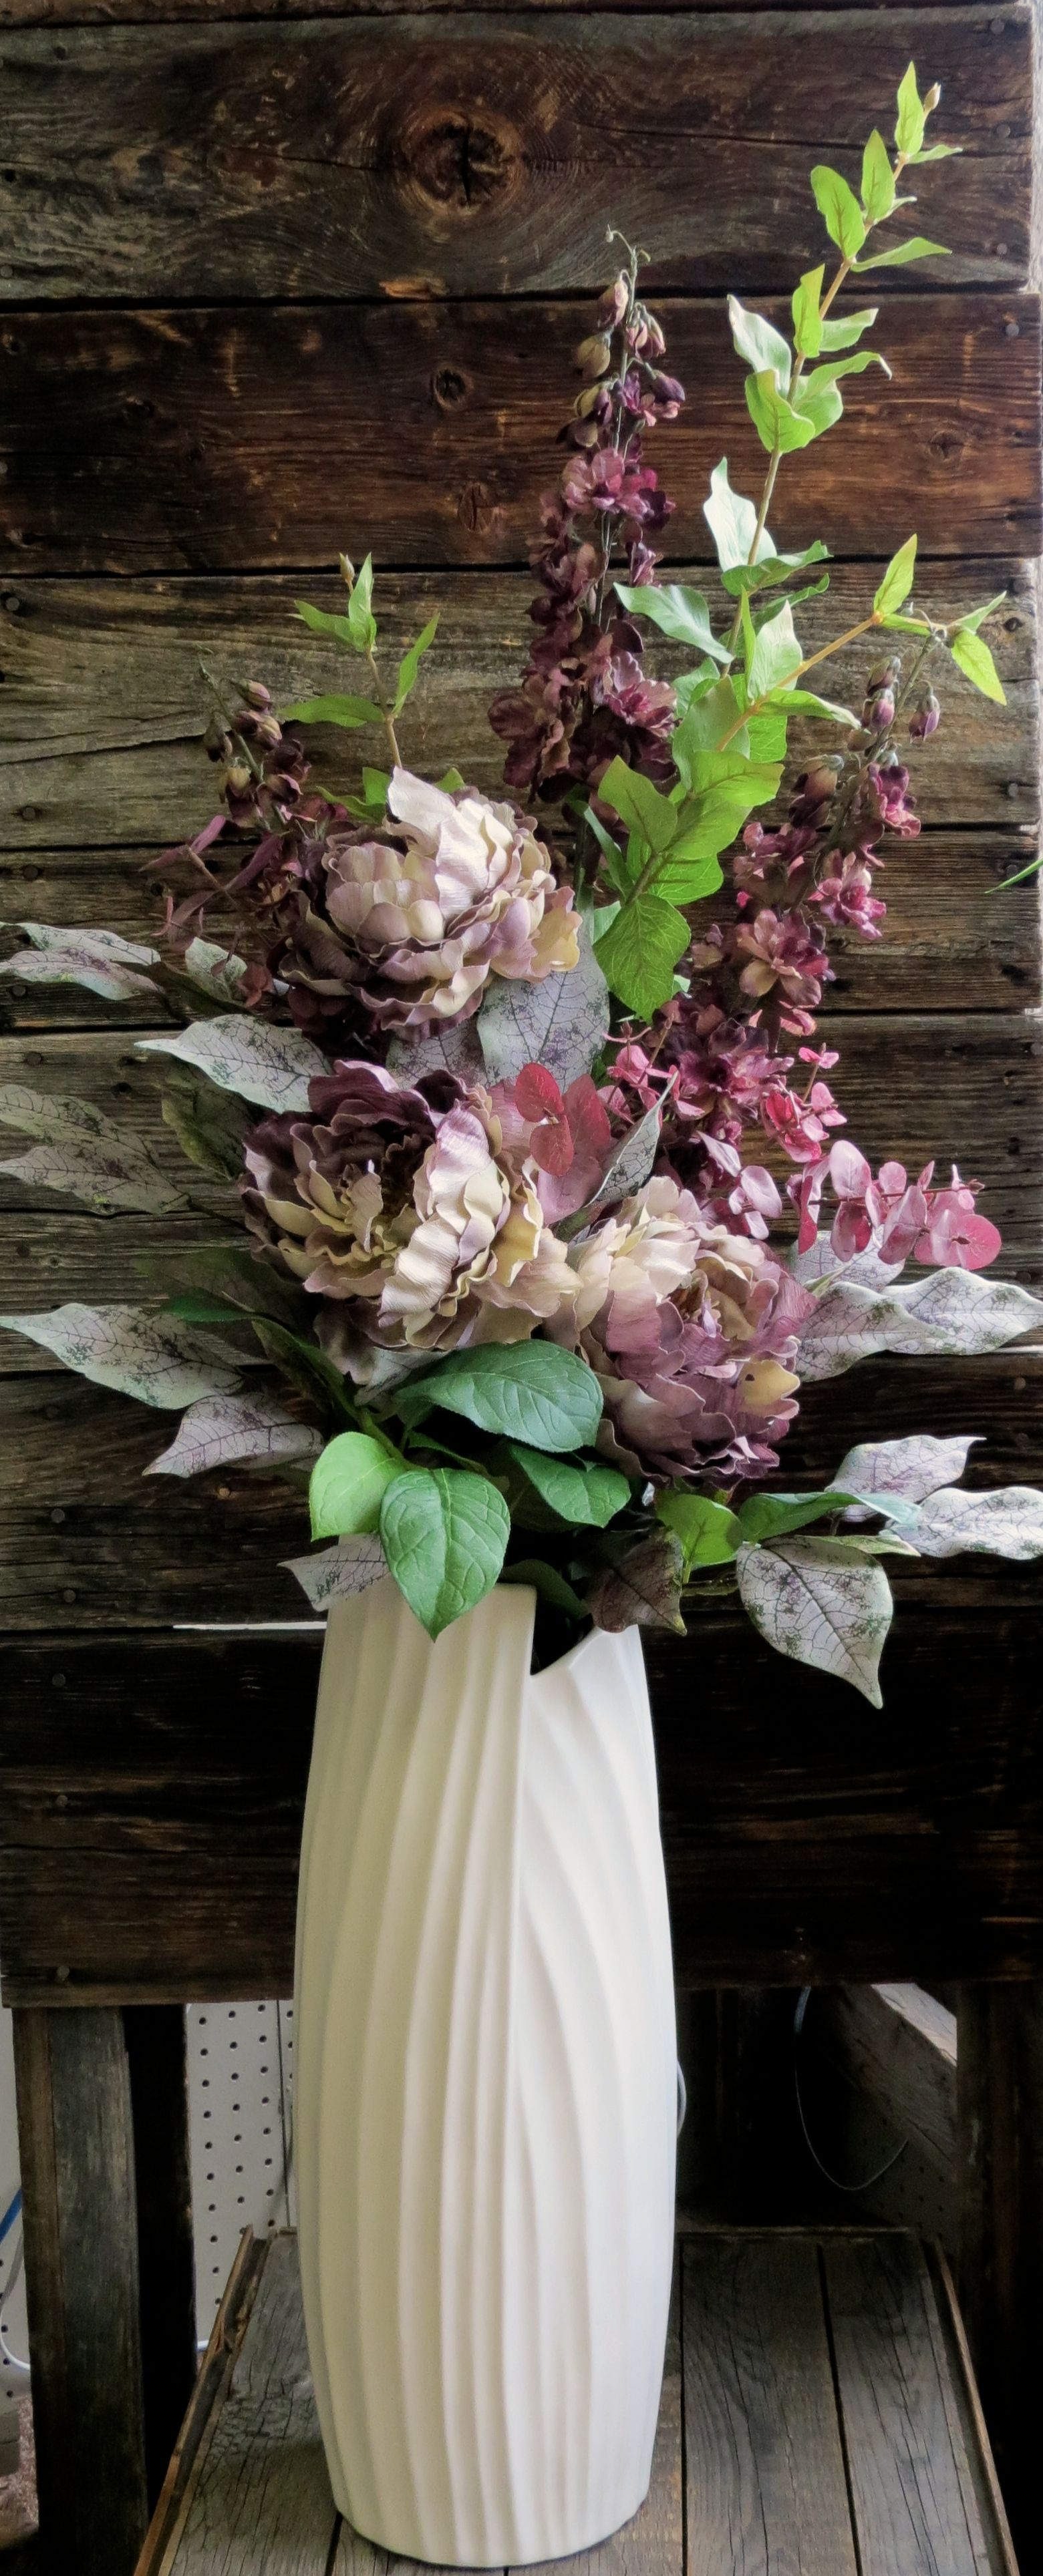 Tall Floor Vase With Mauve Purple Silk Flowers The Flower Arrangement Is Removable To Accommodate Easy Change Over For Other Seasonal